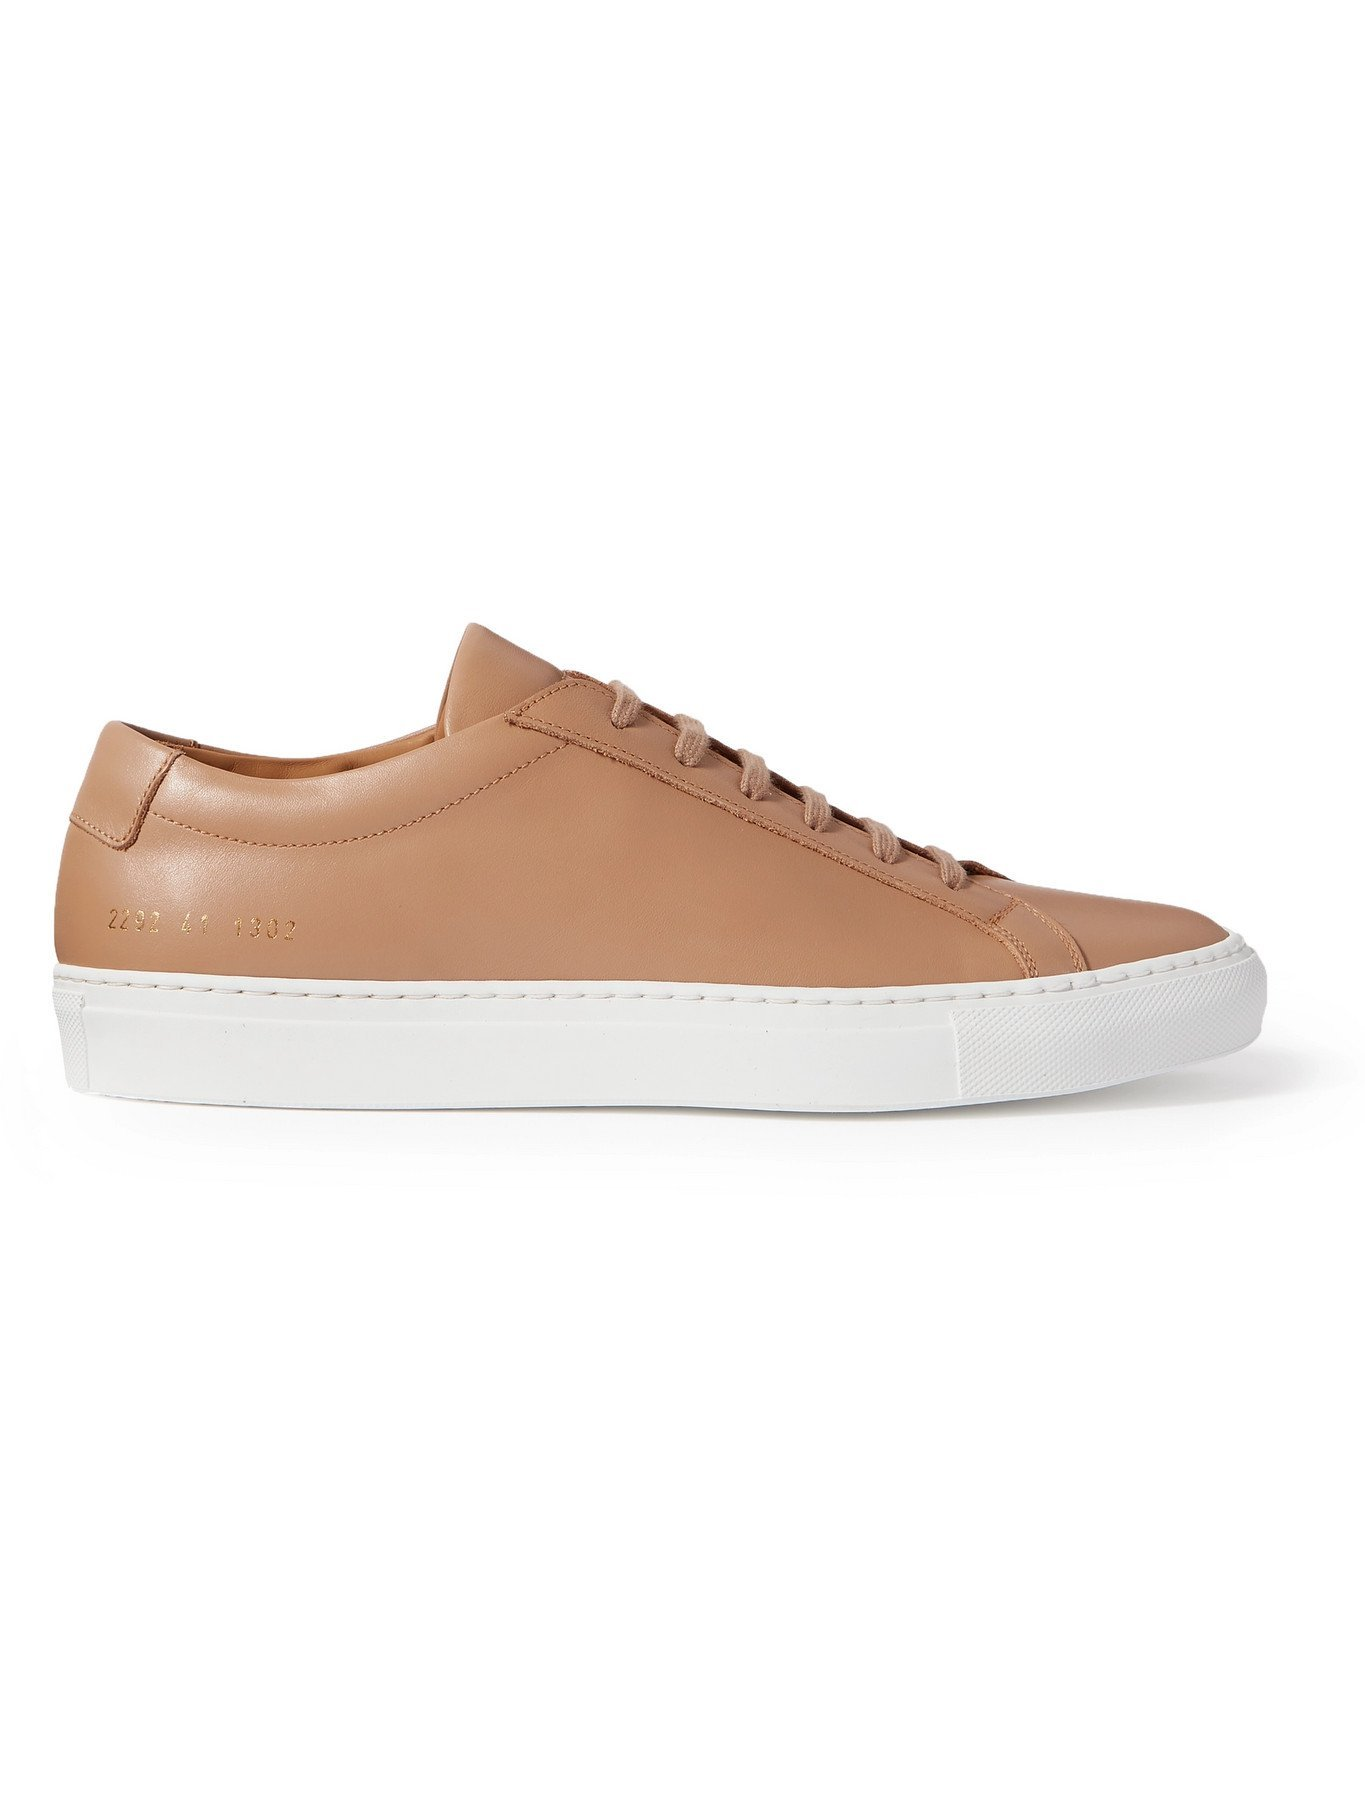 Photo: COMMON PROJECTS - Original Achilles Leather Sneakers - Brown